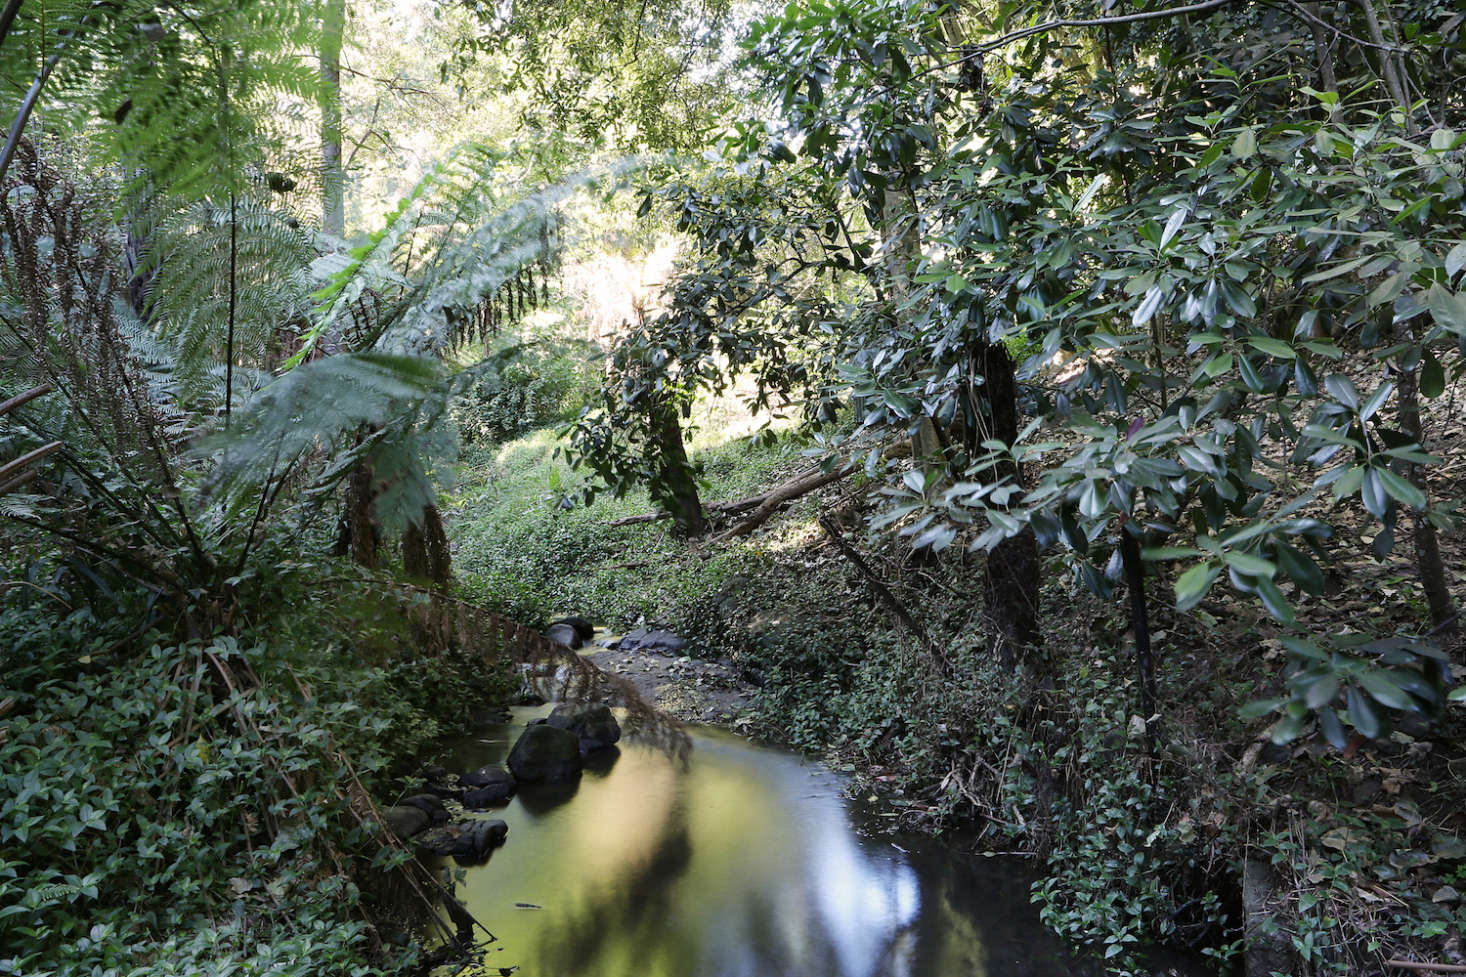 Clematis Creek meanders behind the property;from the residence, you can hear its burble. Wildlife can be spotted here, including wombats, wallabies, the tiny marsupials calledantechinus, and sometimes even platypuses.